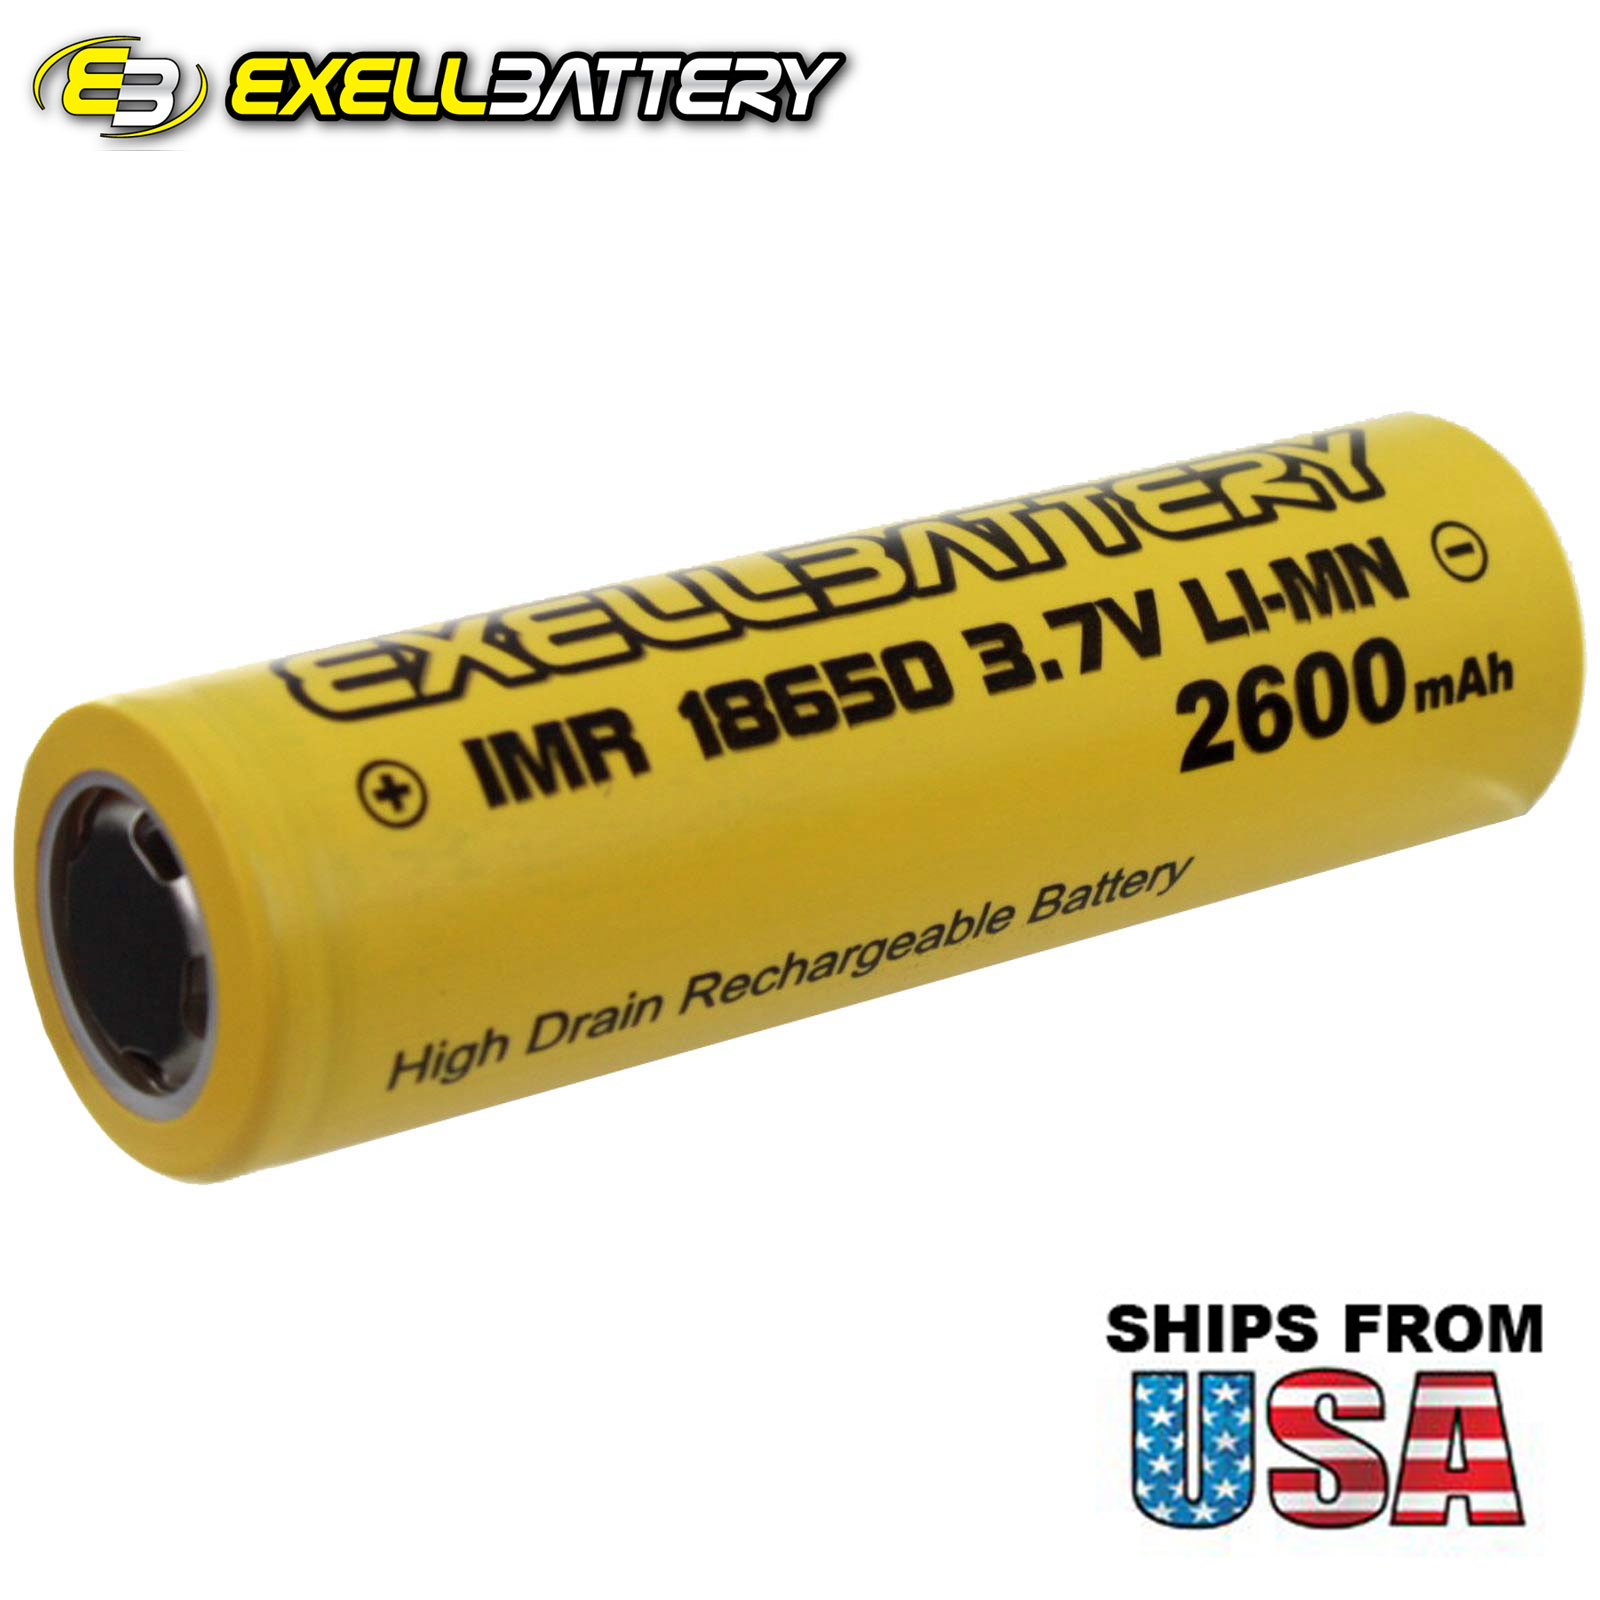 IMR 18650 3.7V Li-Ion (LiMN) 2600mAh Rechargeable Battery Mod Vape Flashlights